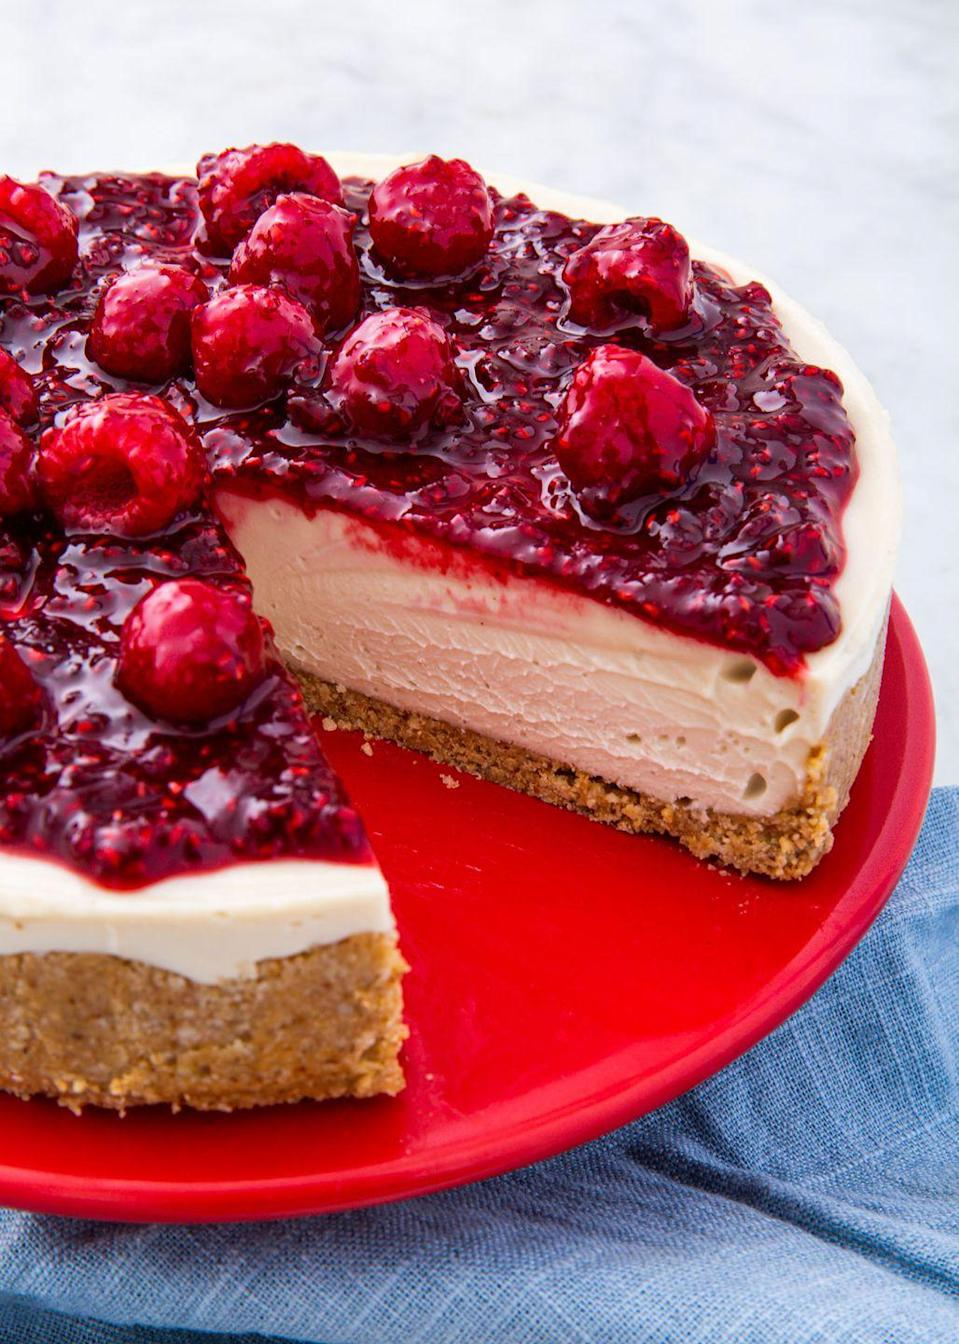 """<p>All the goodness of any other cheesecake, but vegan friendly.</p><p>Get the recipe from <a href=""""https://www.delish.com/cooking/nutrition/a29369129/vegan-cheesecake-recipe/"""" rel=""""nofollow noopener"""" target=""""_blank"""" data-ylk=""""slk:Delish"""" class=""""link rapid-noclick-resp"""">Delish</a>.</p>"""